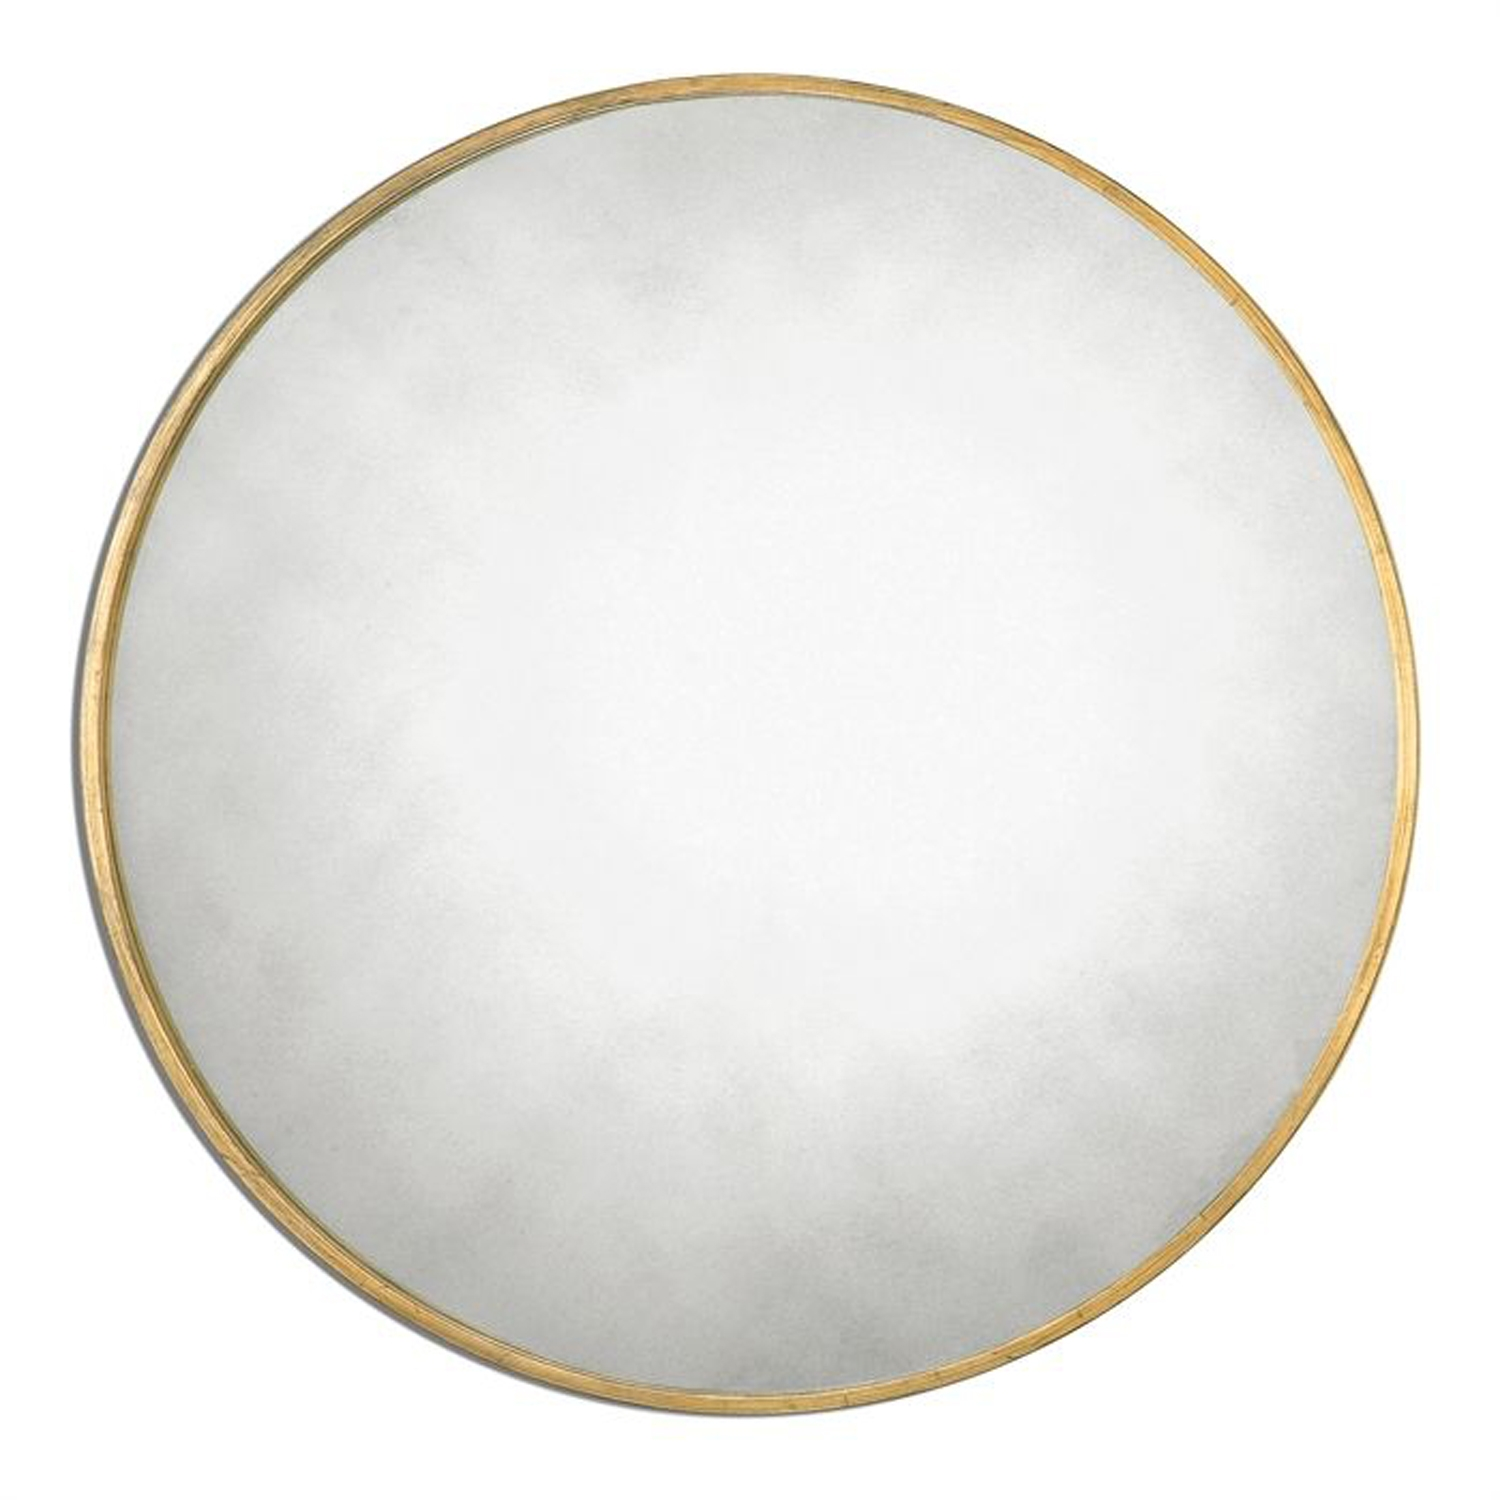 Junius Round Gold Round Mirror Uttermost Round Mirrors Home Decor Throughout Round Antique Mirrors (Image 7 of 15)